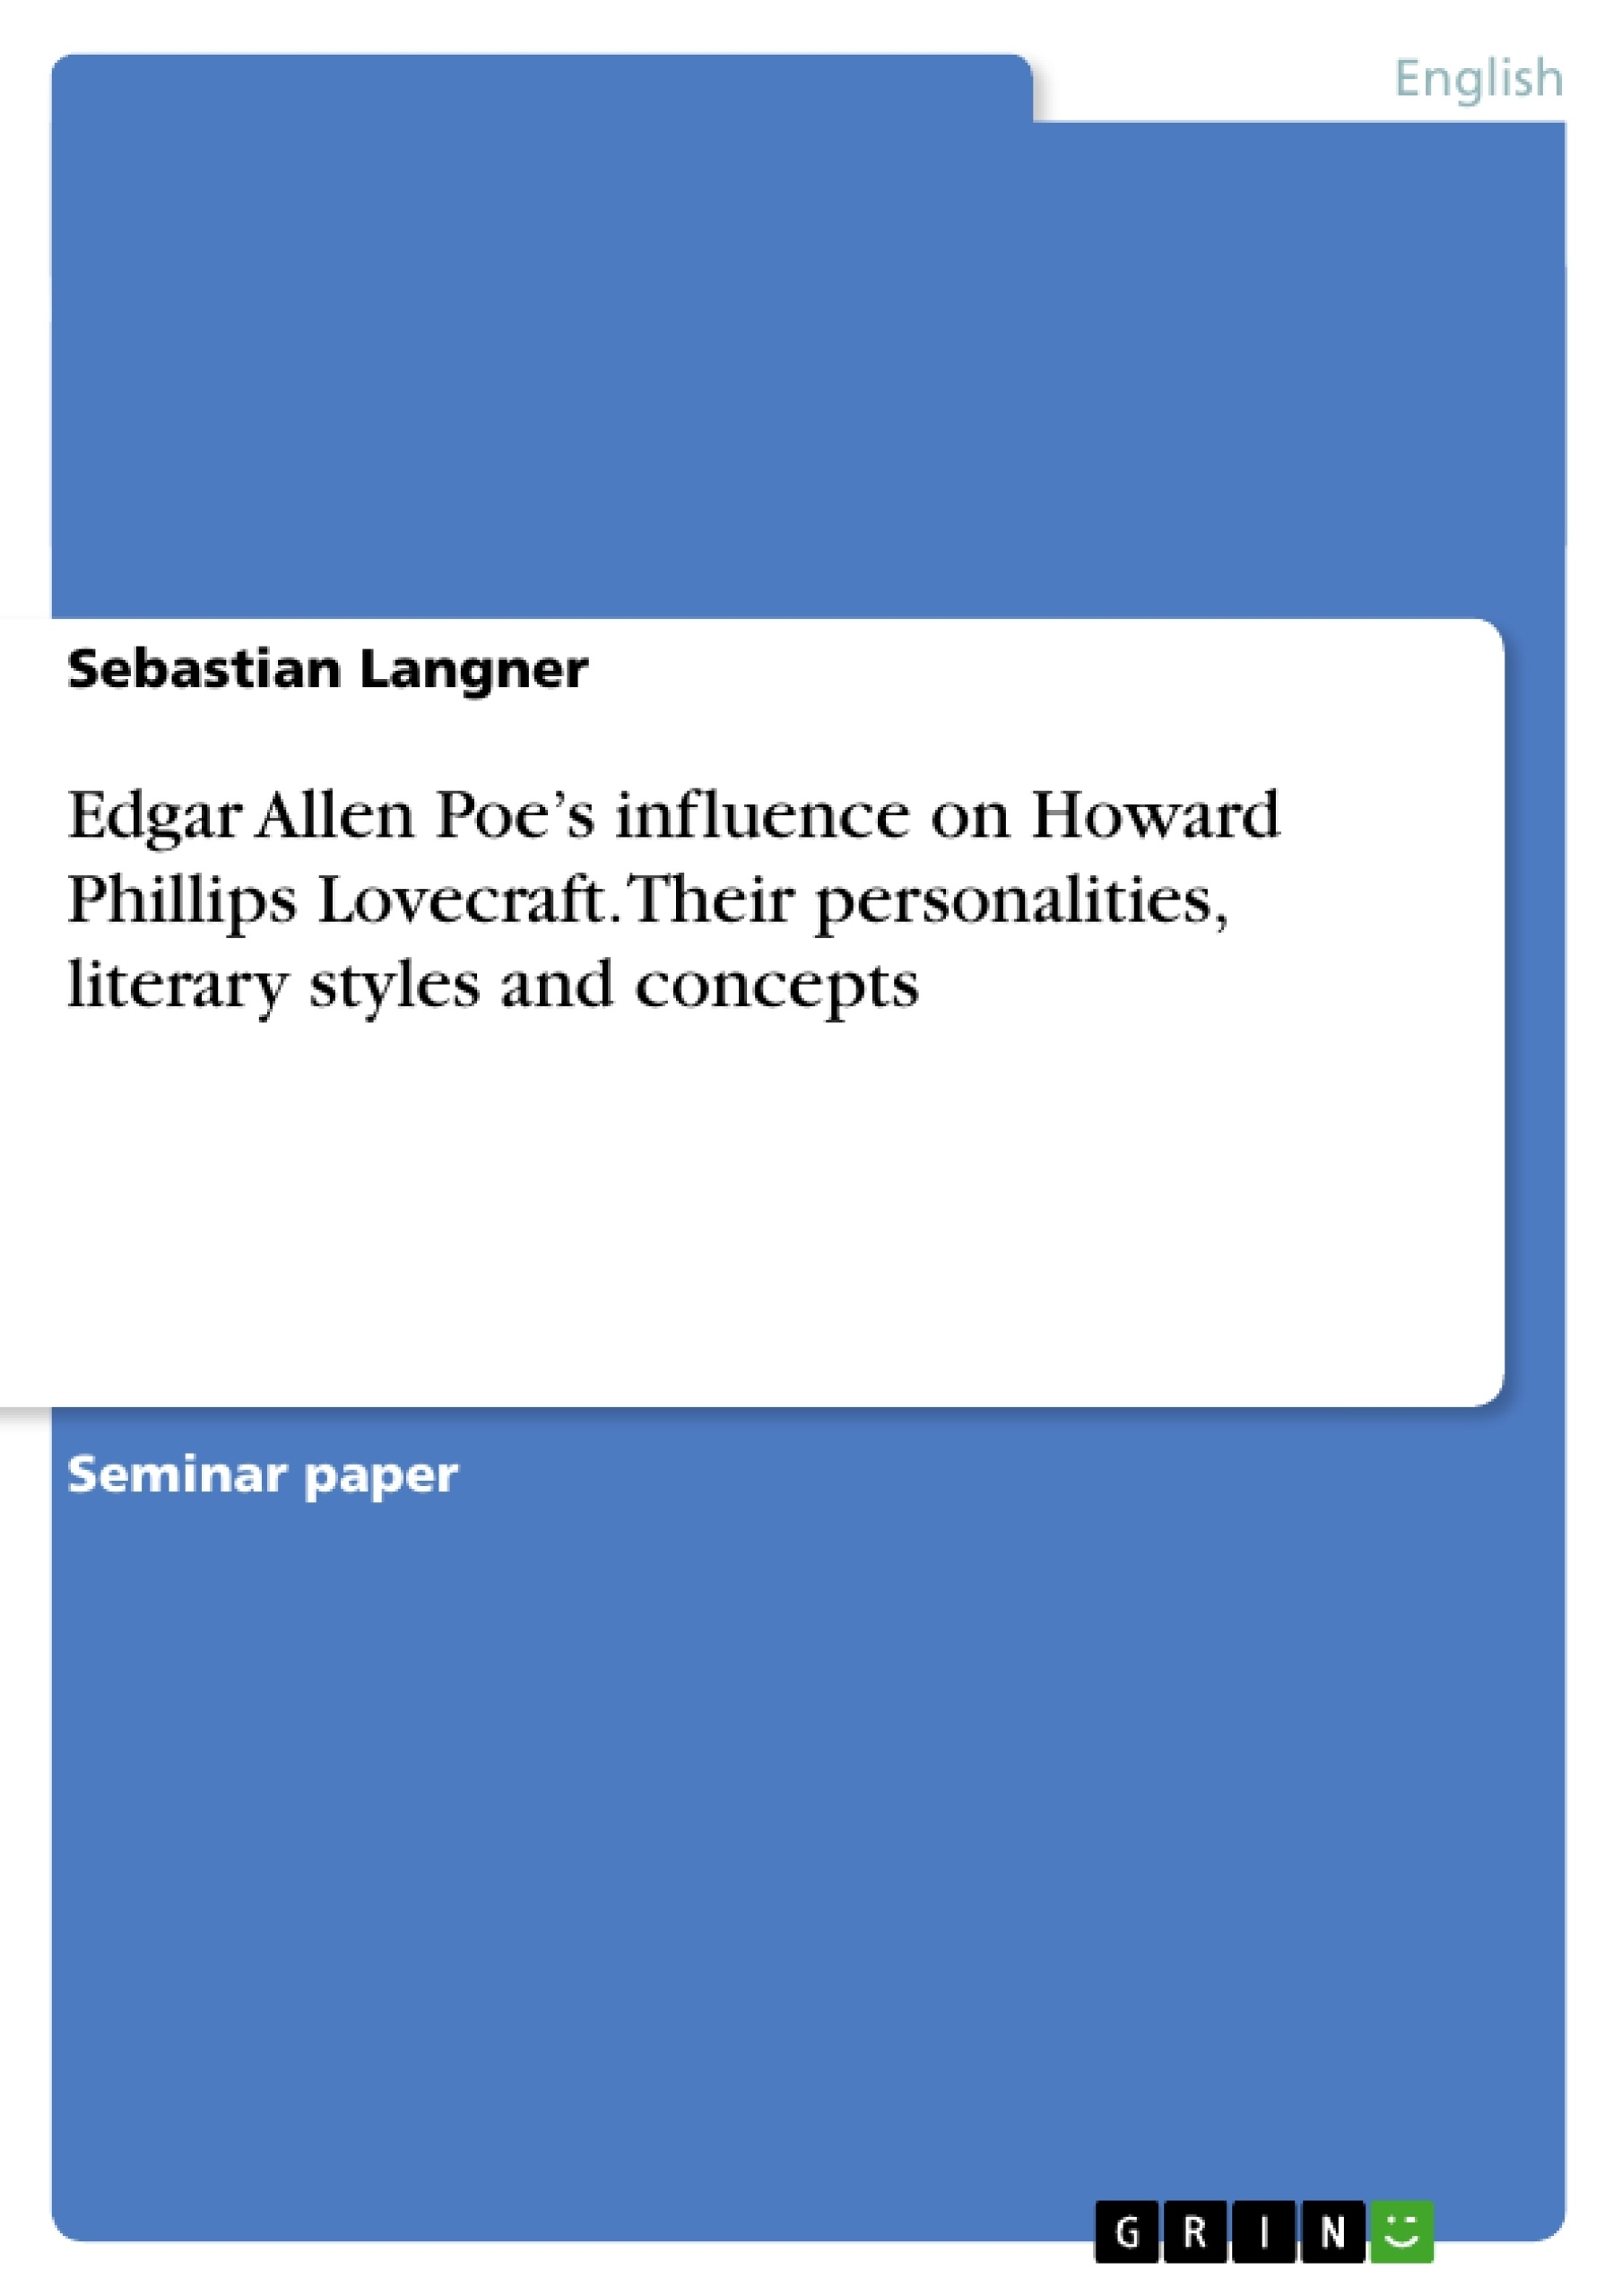 Title: Edgar Allen Poe's influence on Howard Phillips Lovecraft. Their personalities, literary styles and concepts